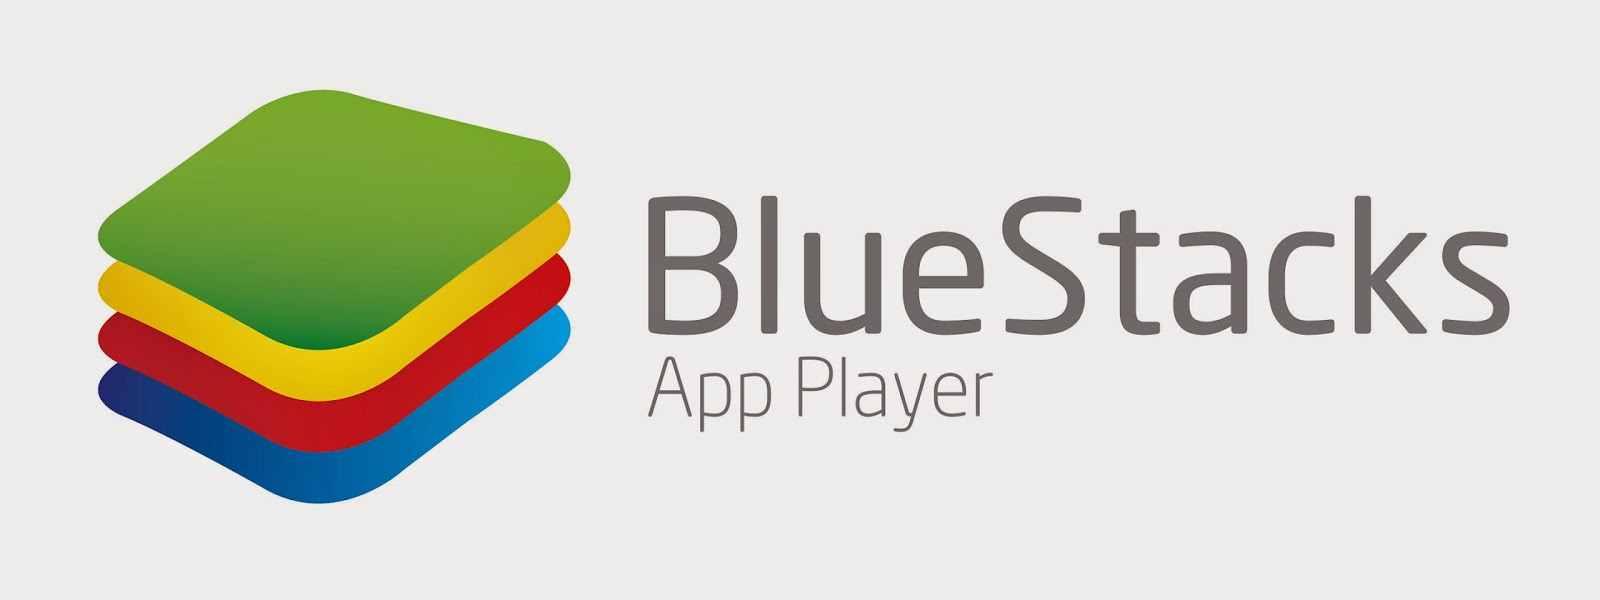 Download BlueStacks App Player Freeware For Windows